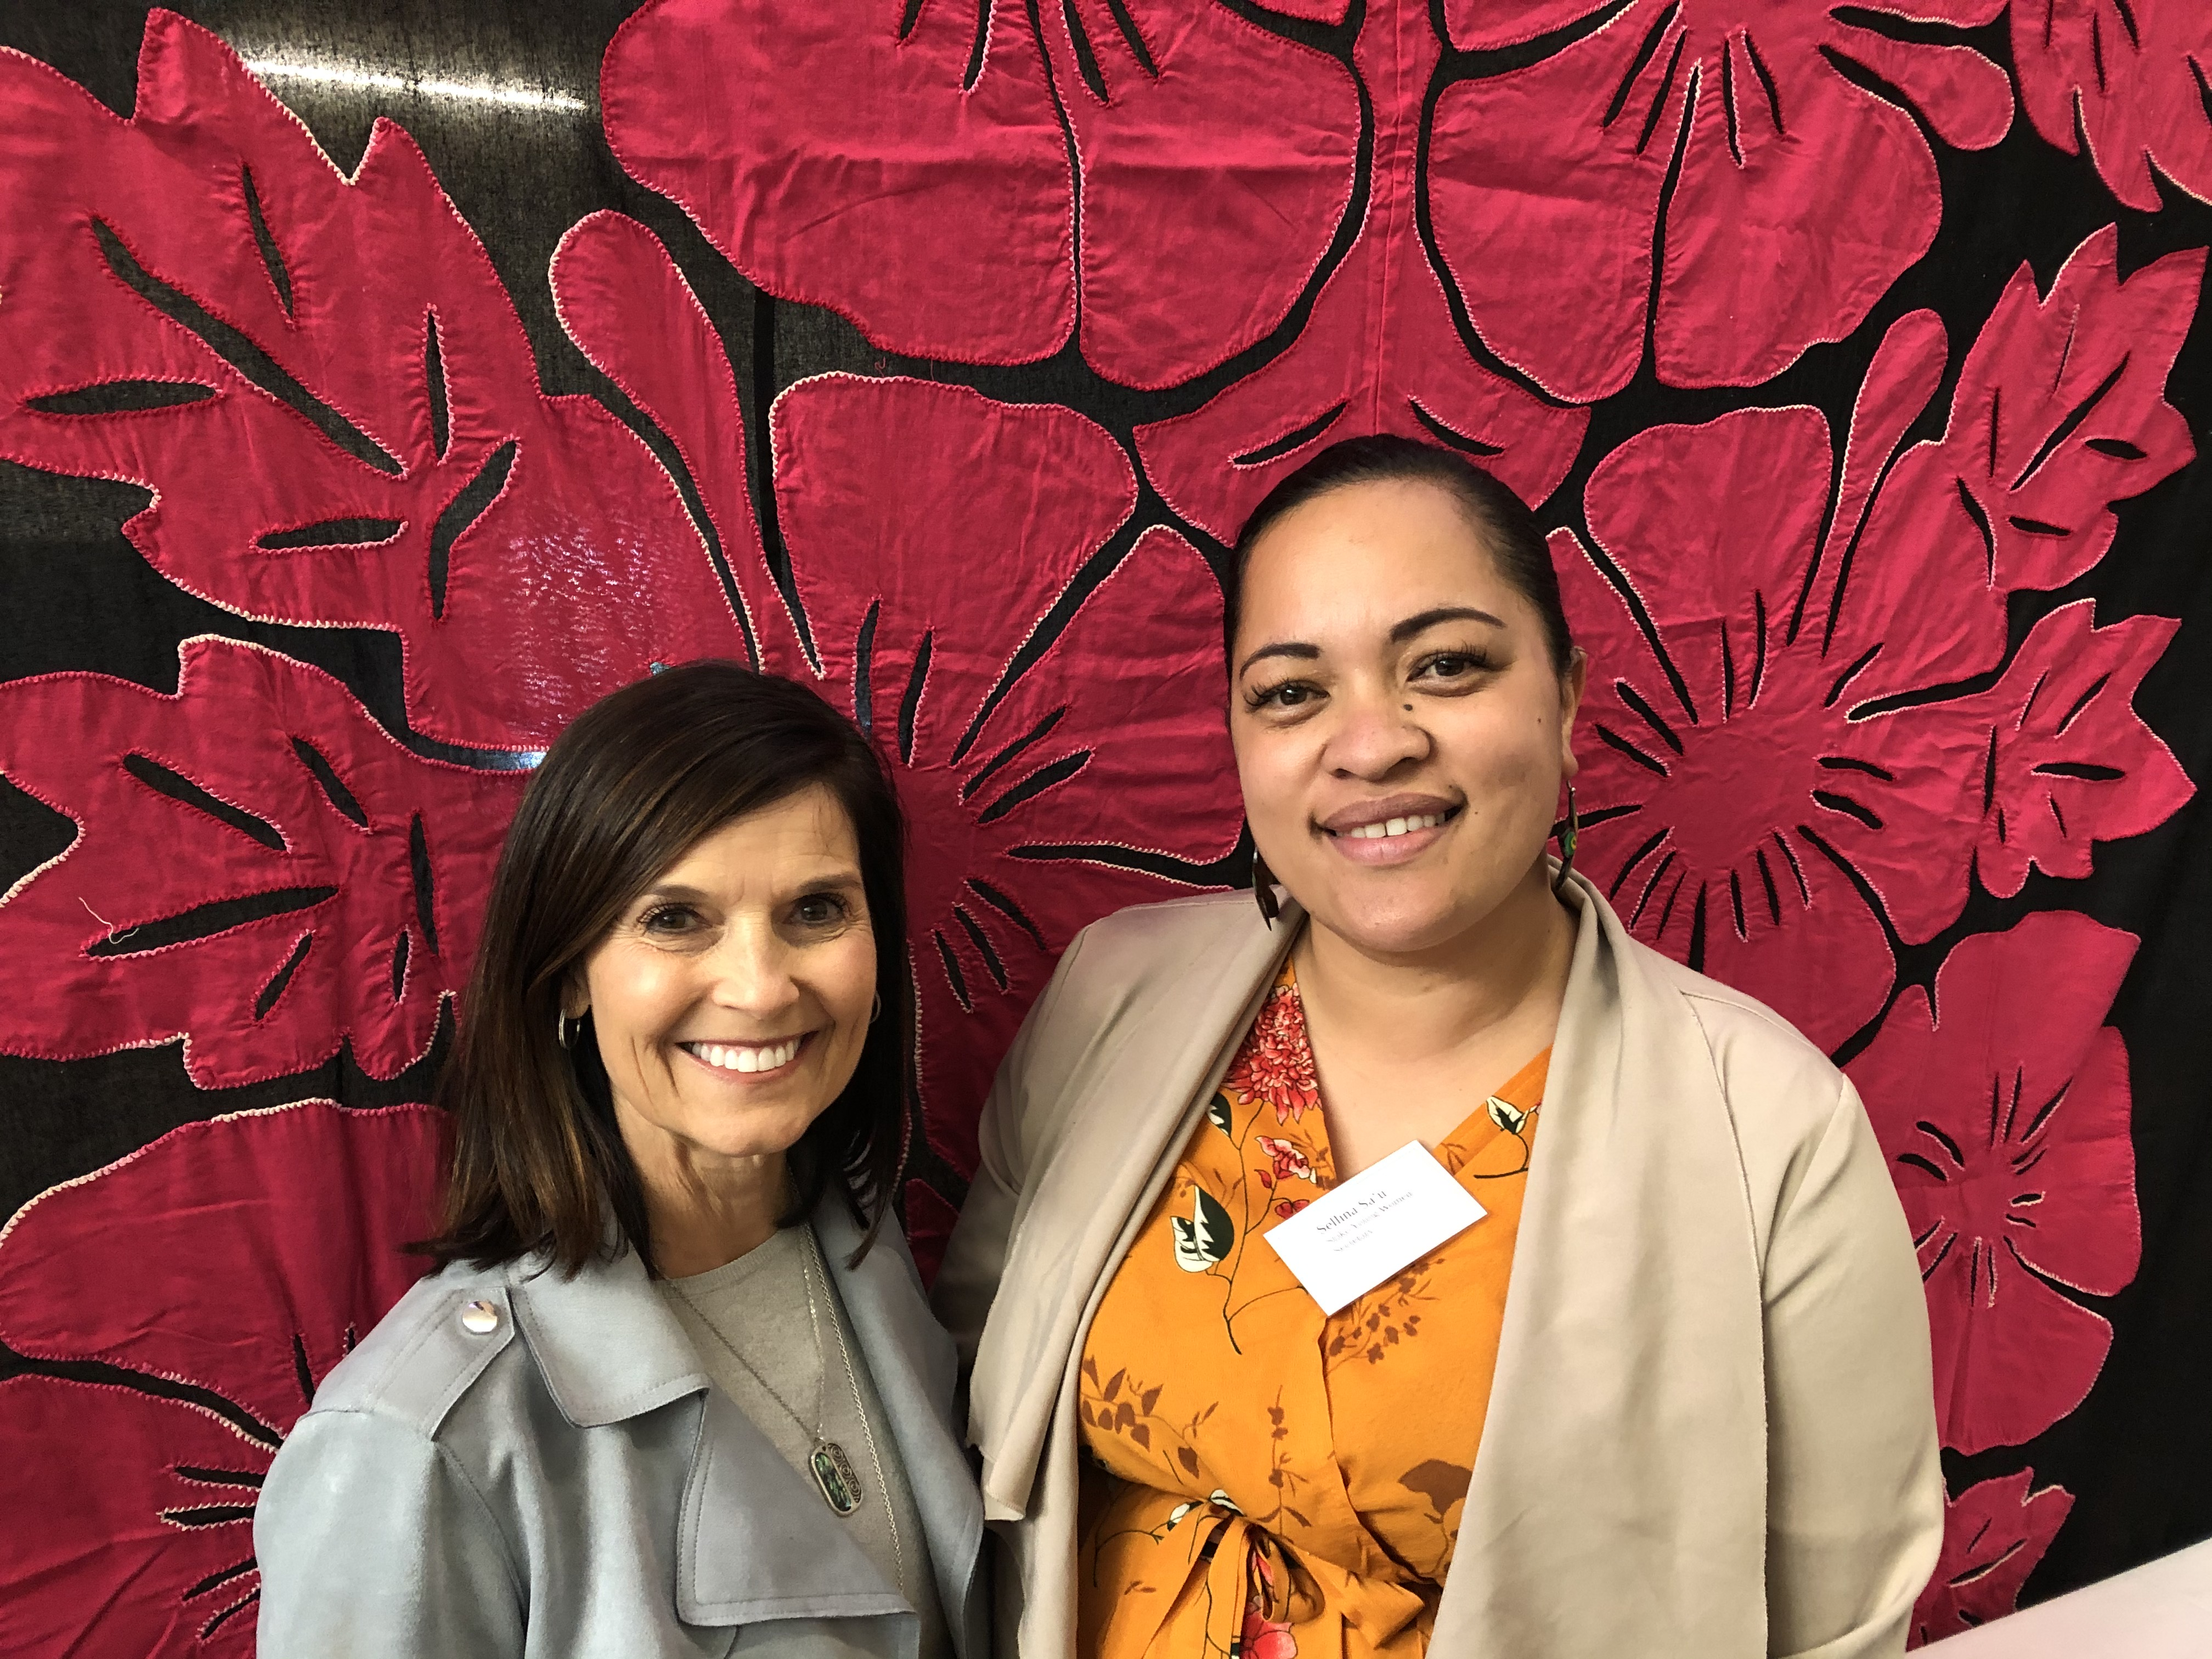 Sister Becky Craven, left, poses with a Church member in Dunedin, New Zealand, in front of a traditional Maori quilt during a visit to the Pacific Area in October 2019.